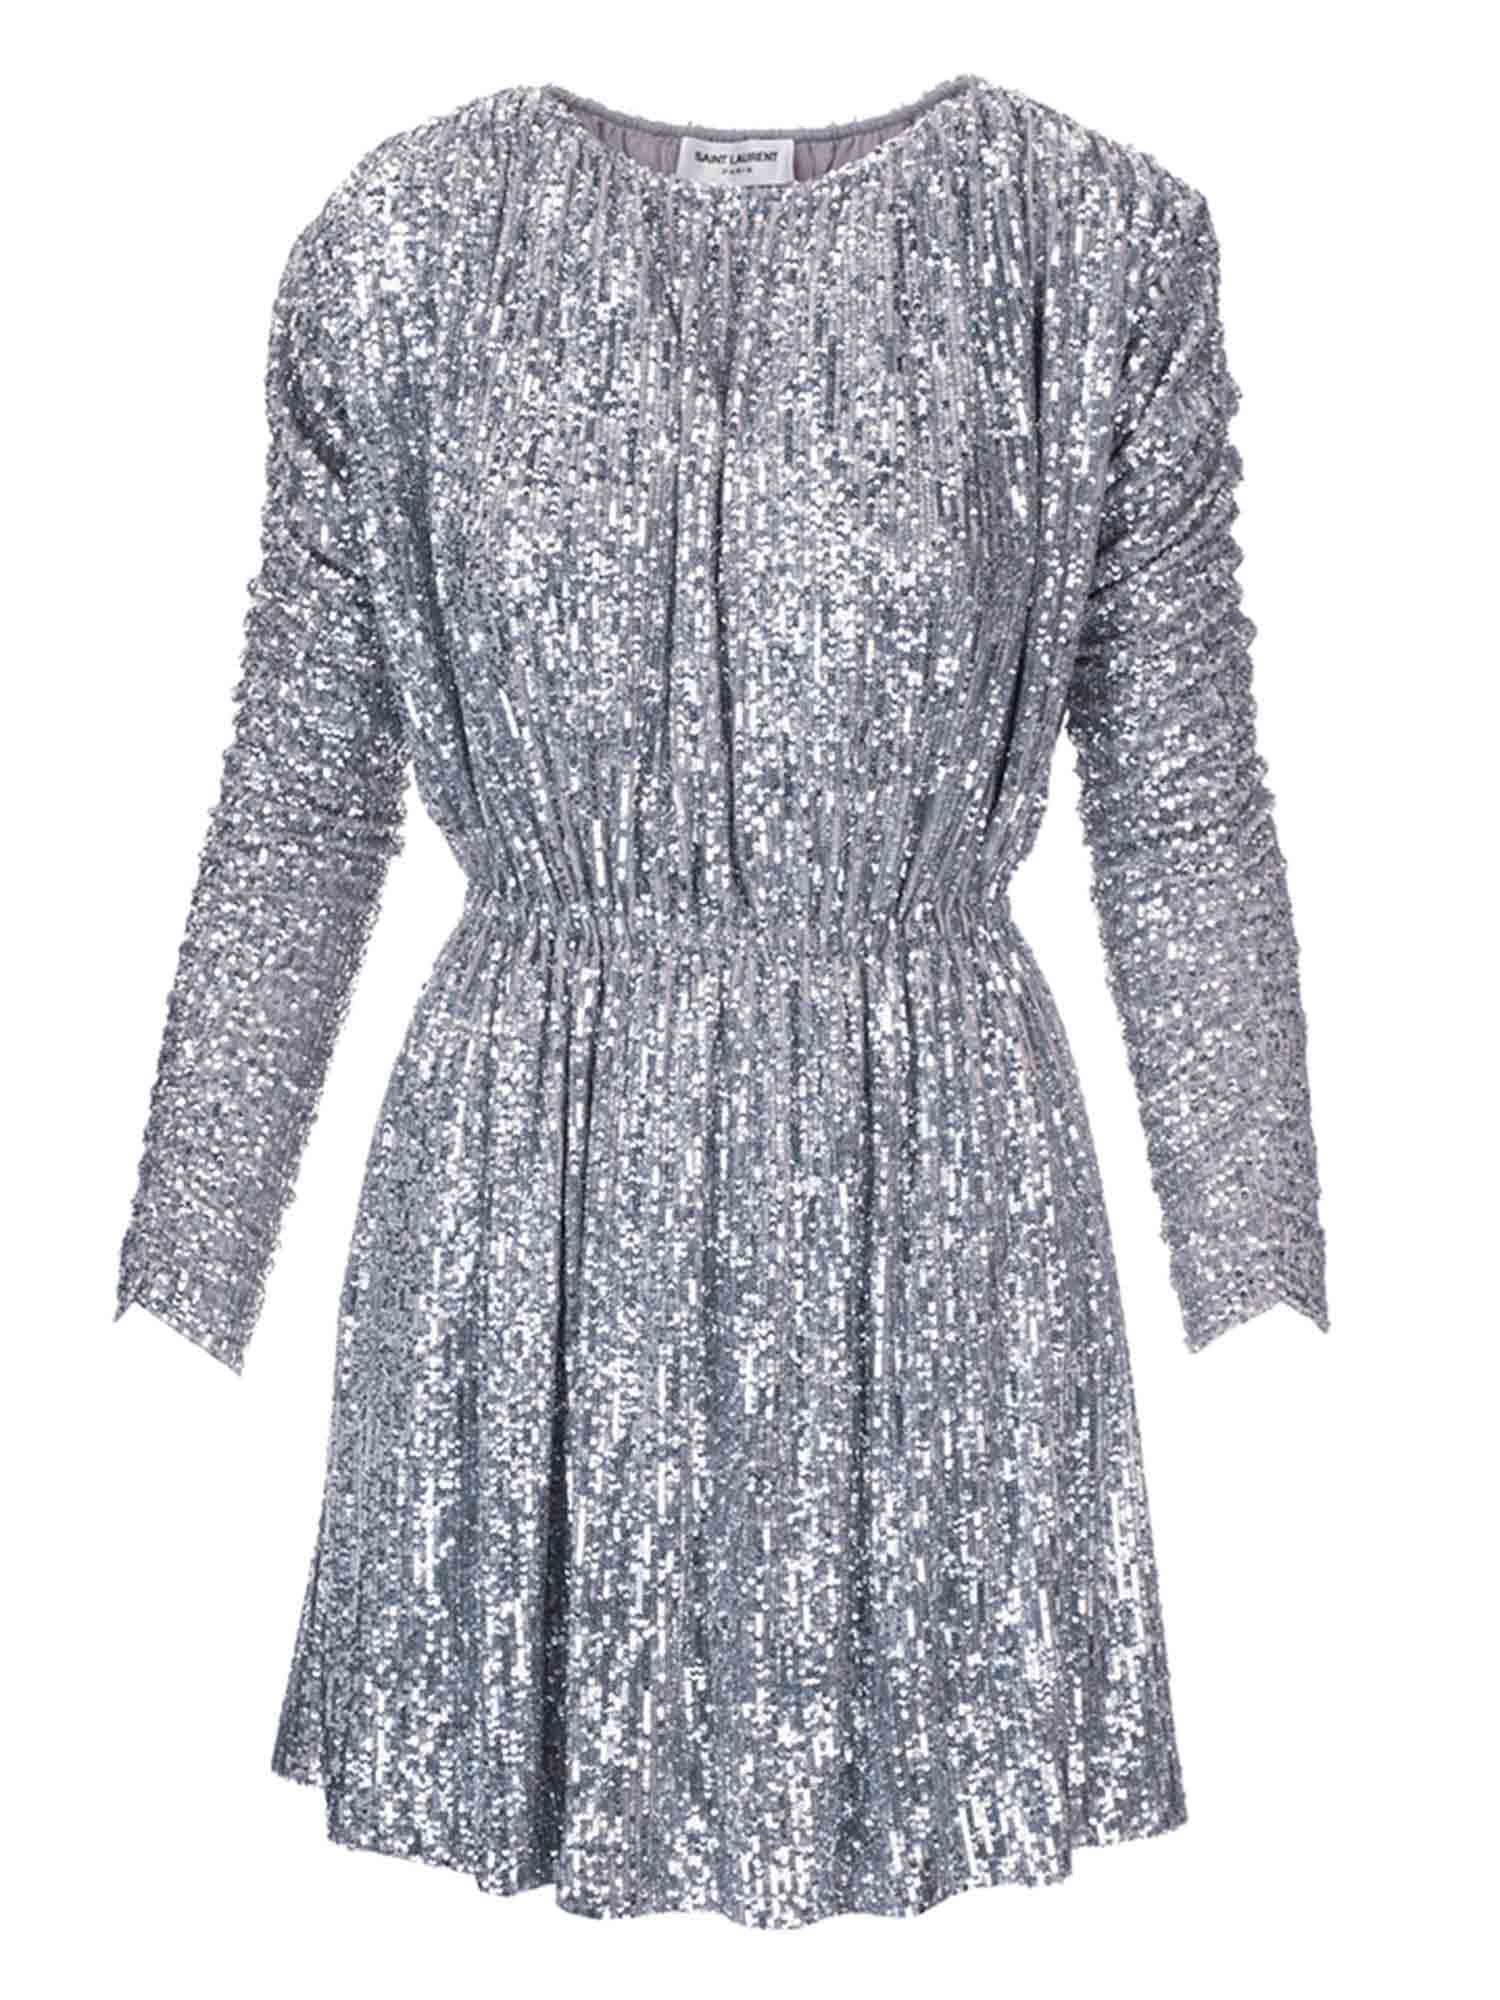 Saint Laurent MINI DRESS IN SILVER SEQUINS